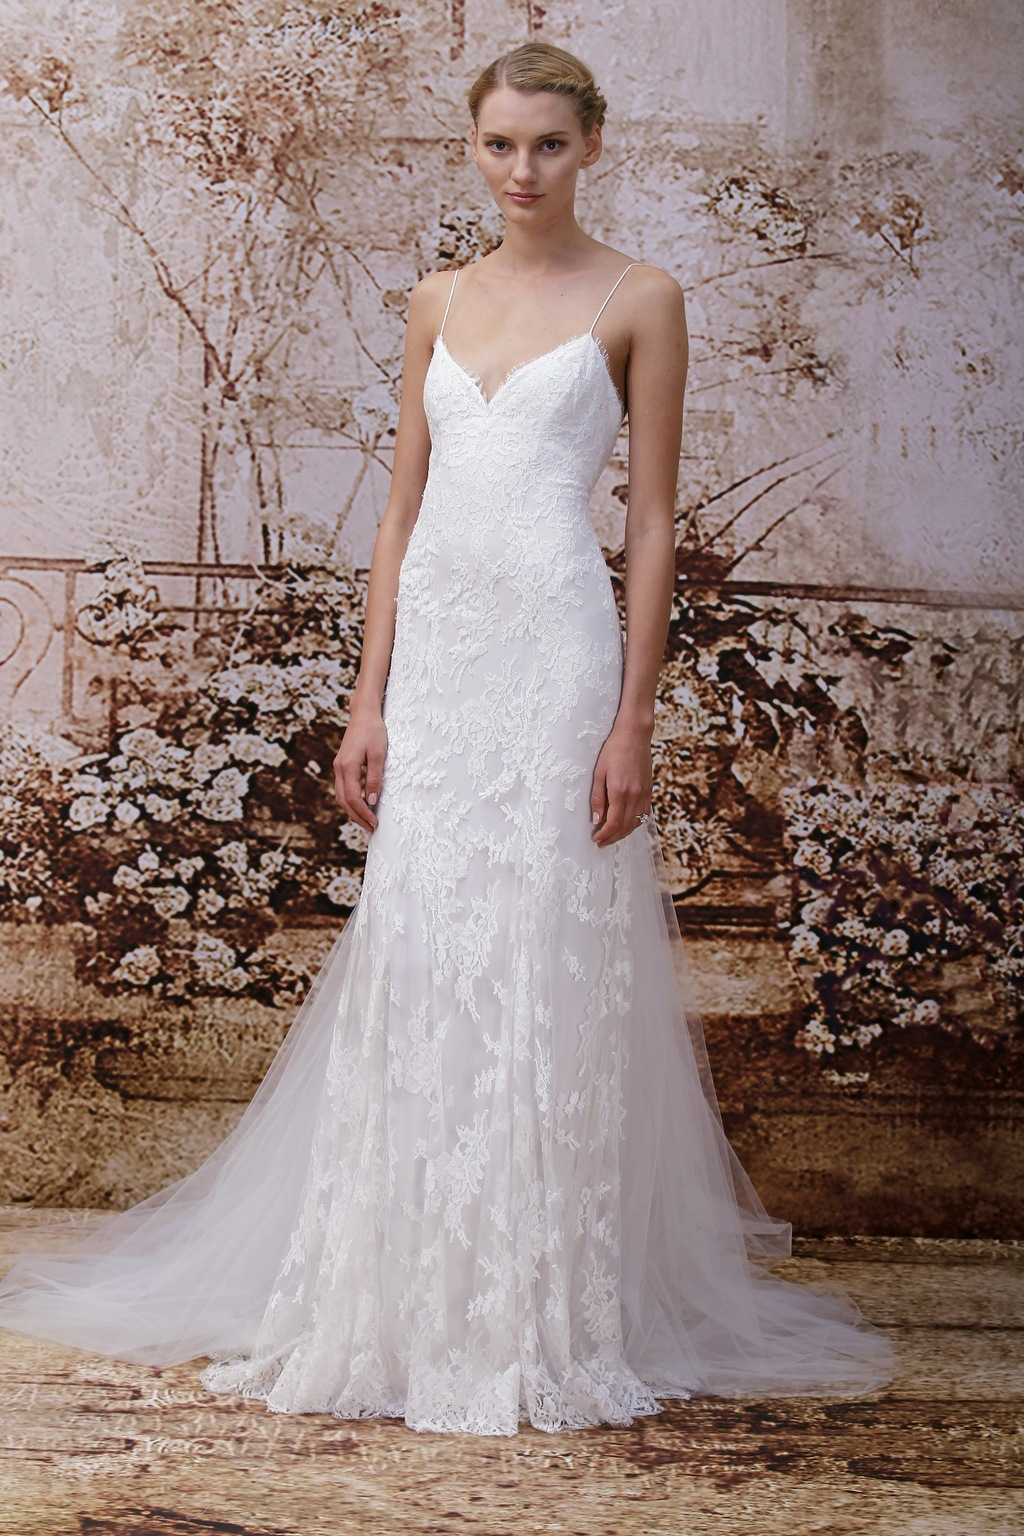 Wedding dress by Monique Lhuillier Fall 2014 bridal Look 9